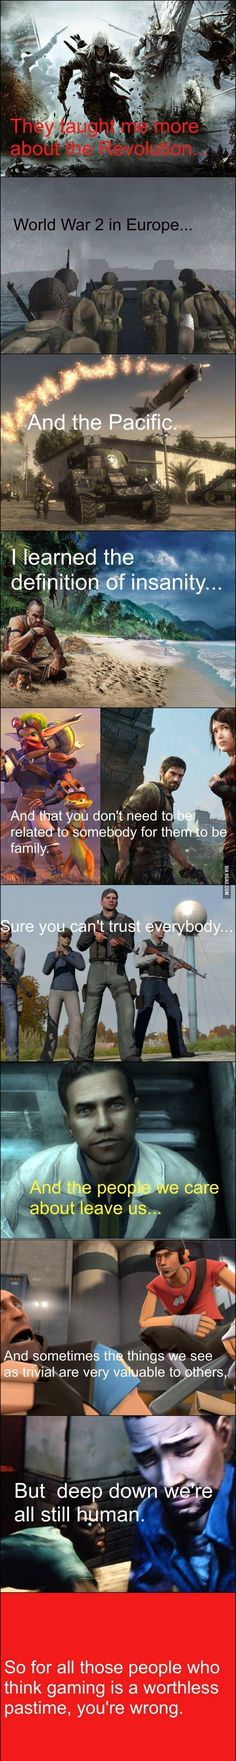 What video games have taught me...the last of us and the walking dead game have…